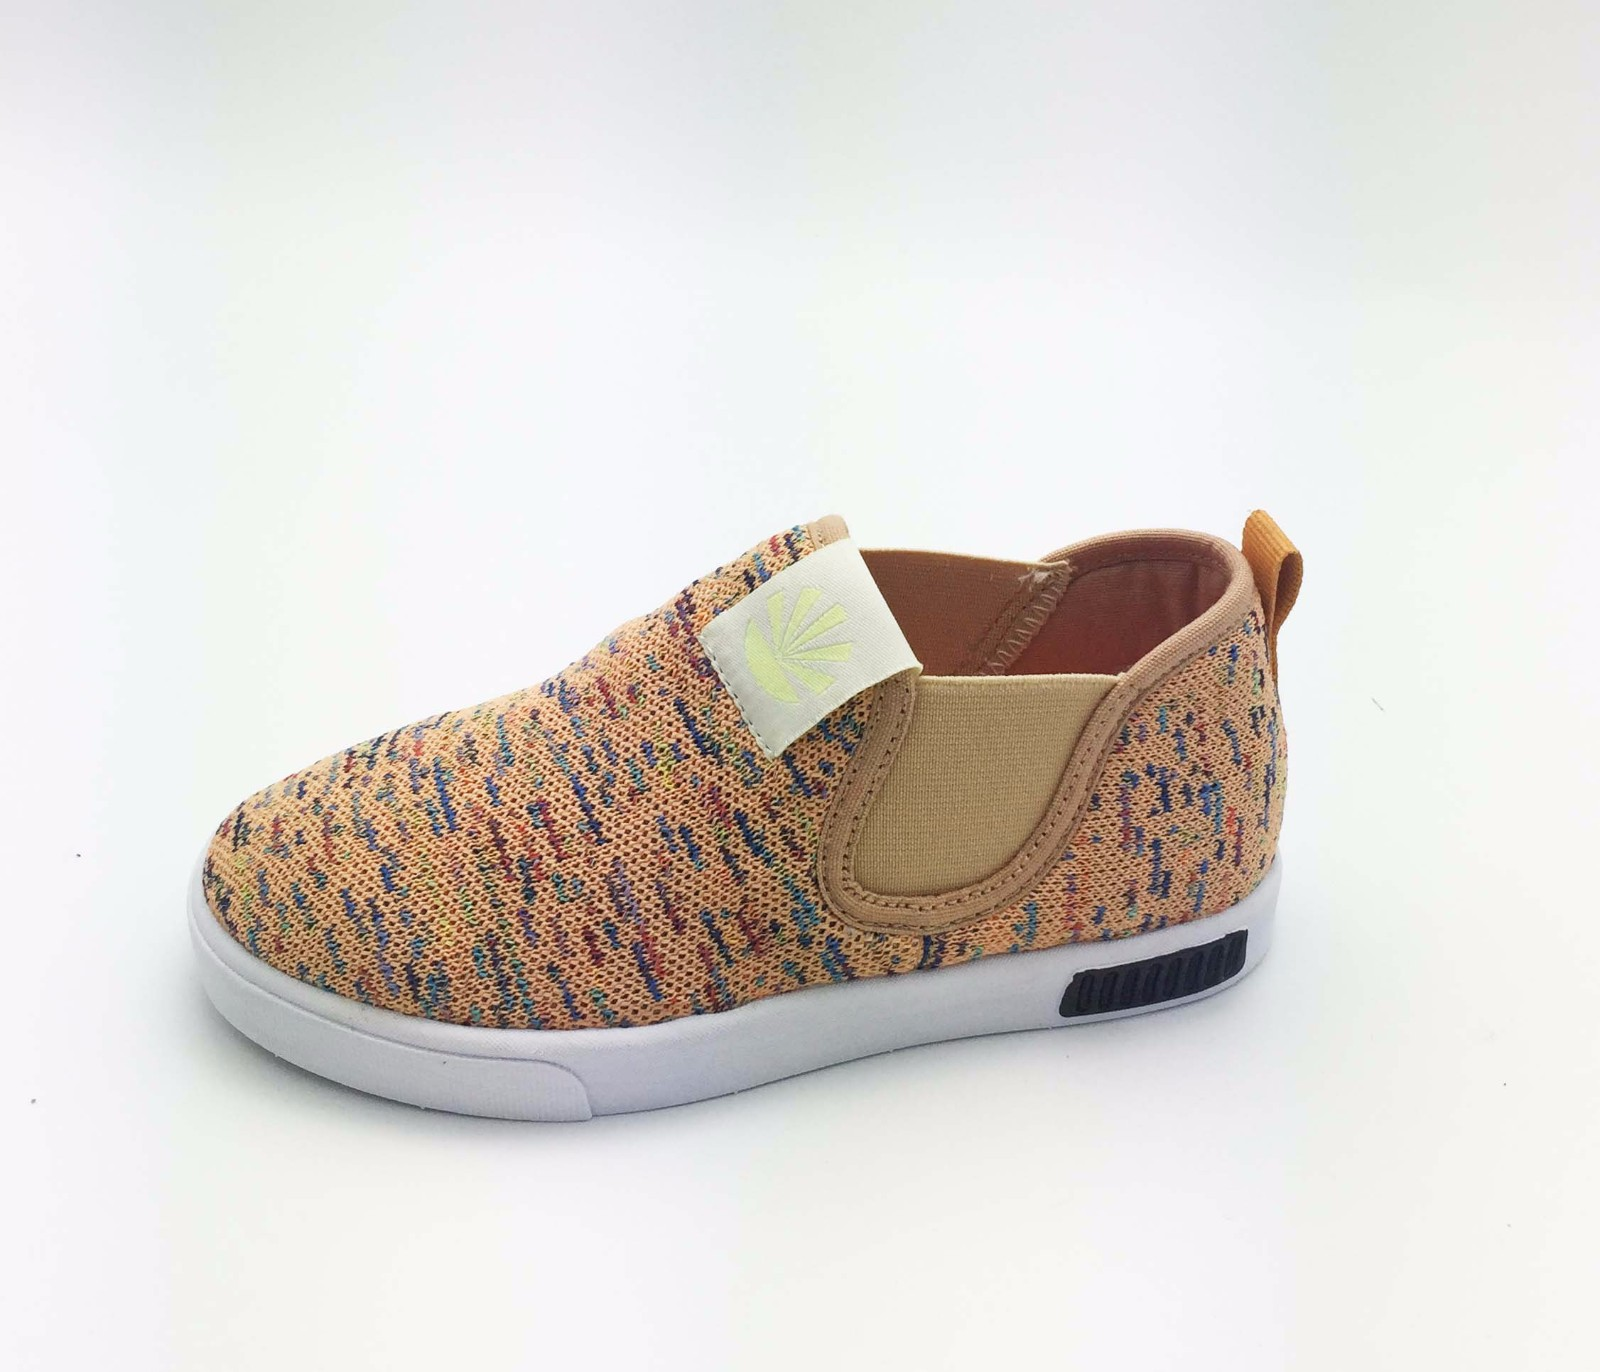 High quality Children Casual Shoes 2017 Hot Sale Boy and Girl's Sneakers Fashion Kid Flyknit Breathable Sport Shoes Quotes,China Children Casual Shoes 2017 Hot Sale Boy and Girl's Sneakers Fashion Kid Flyknit Breathable Sport Shoes Factory,Children Casual Shoes 2017 Hot Sale Boy and Girl's Sneakers Fashion Kid Flyknit Breathable Sport Shoes Purchasing